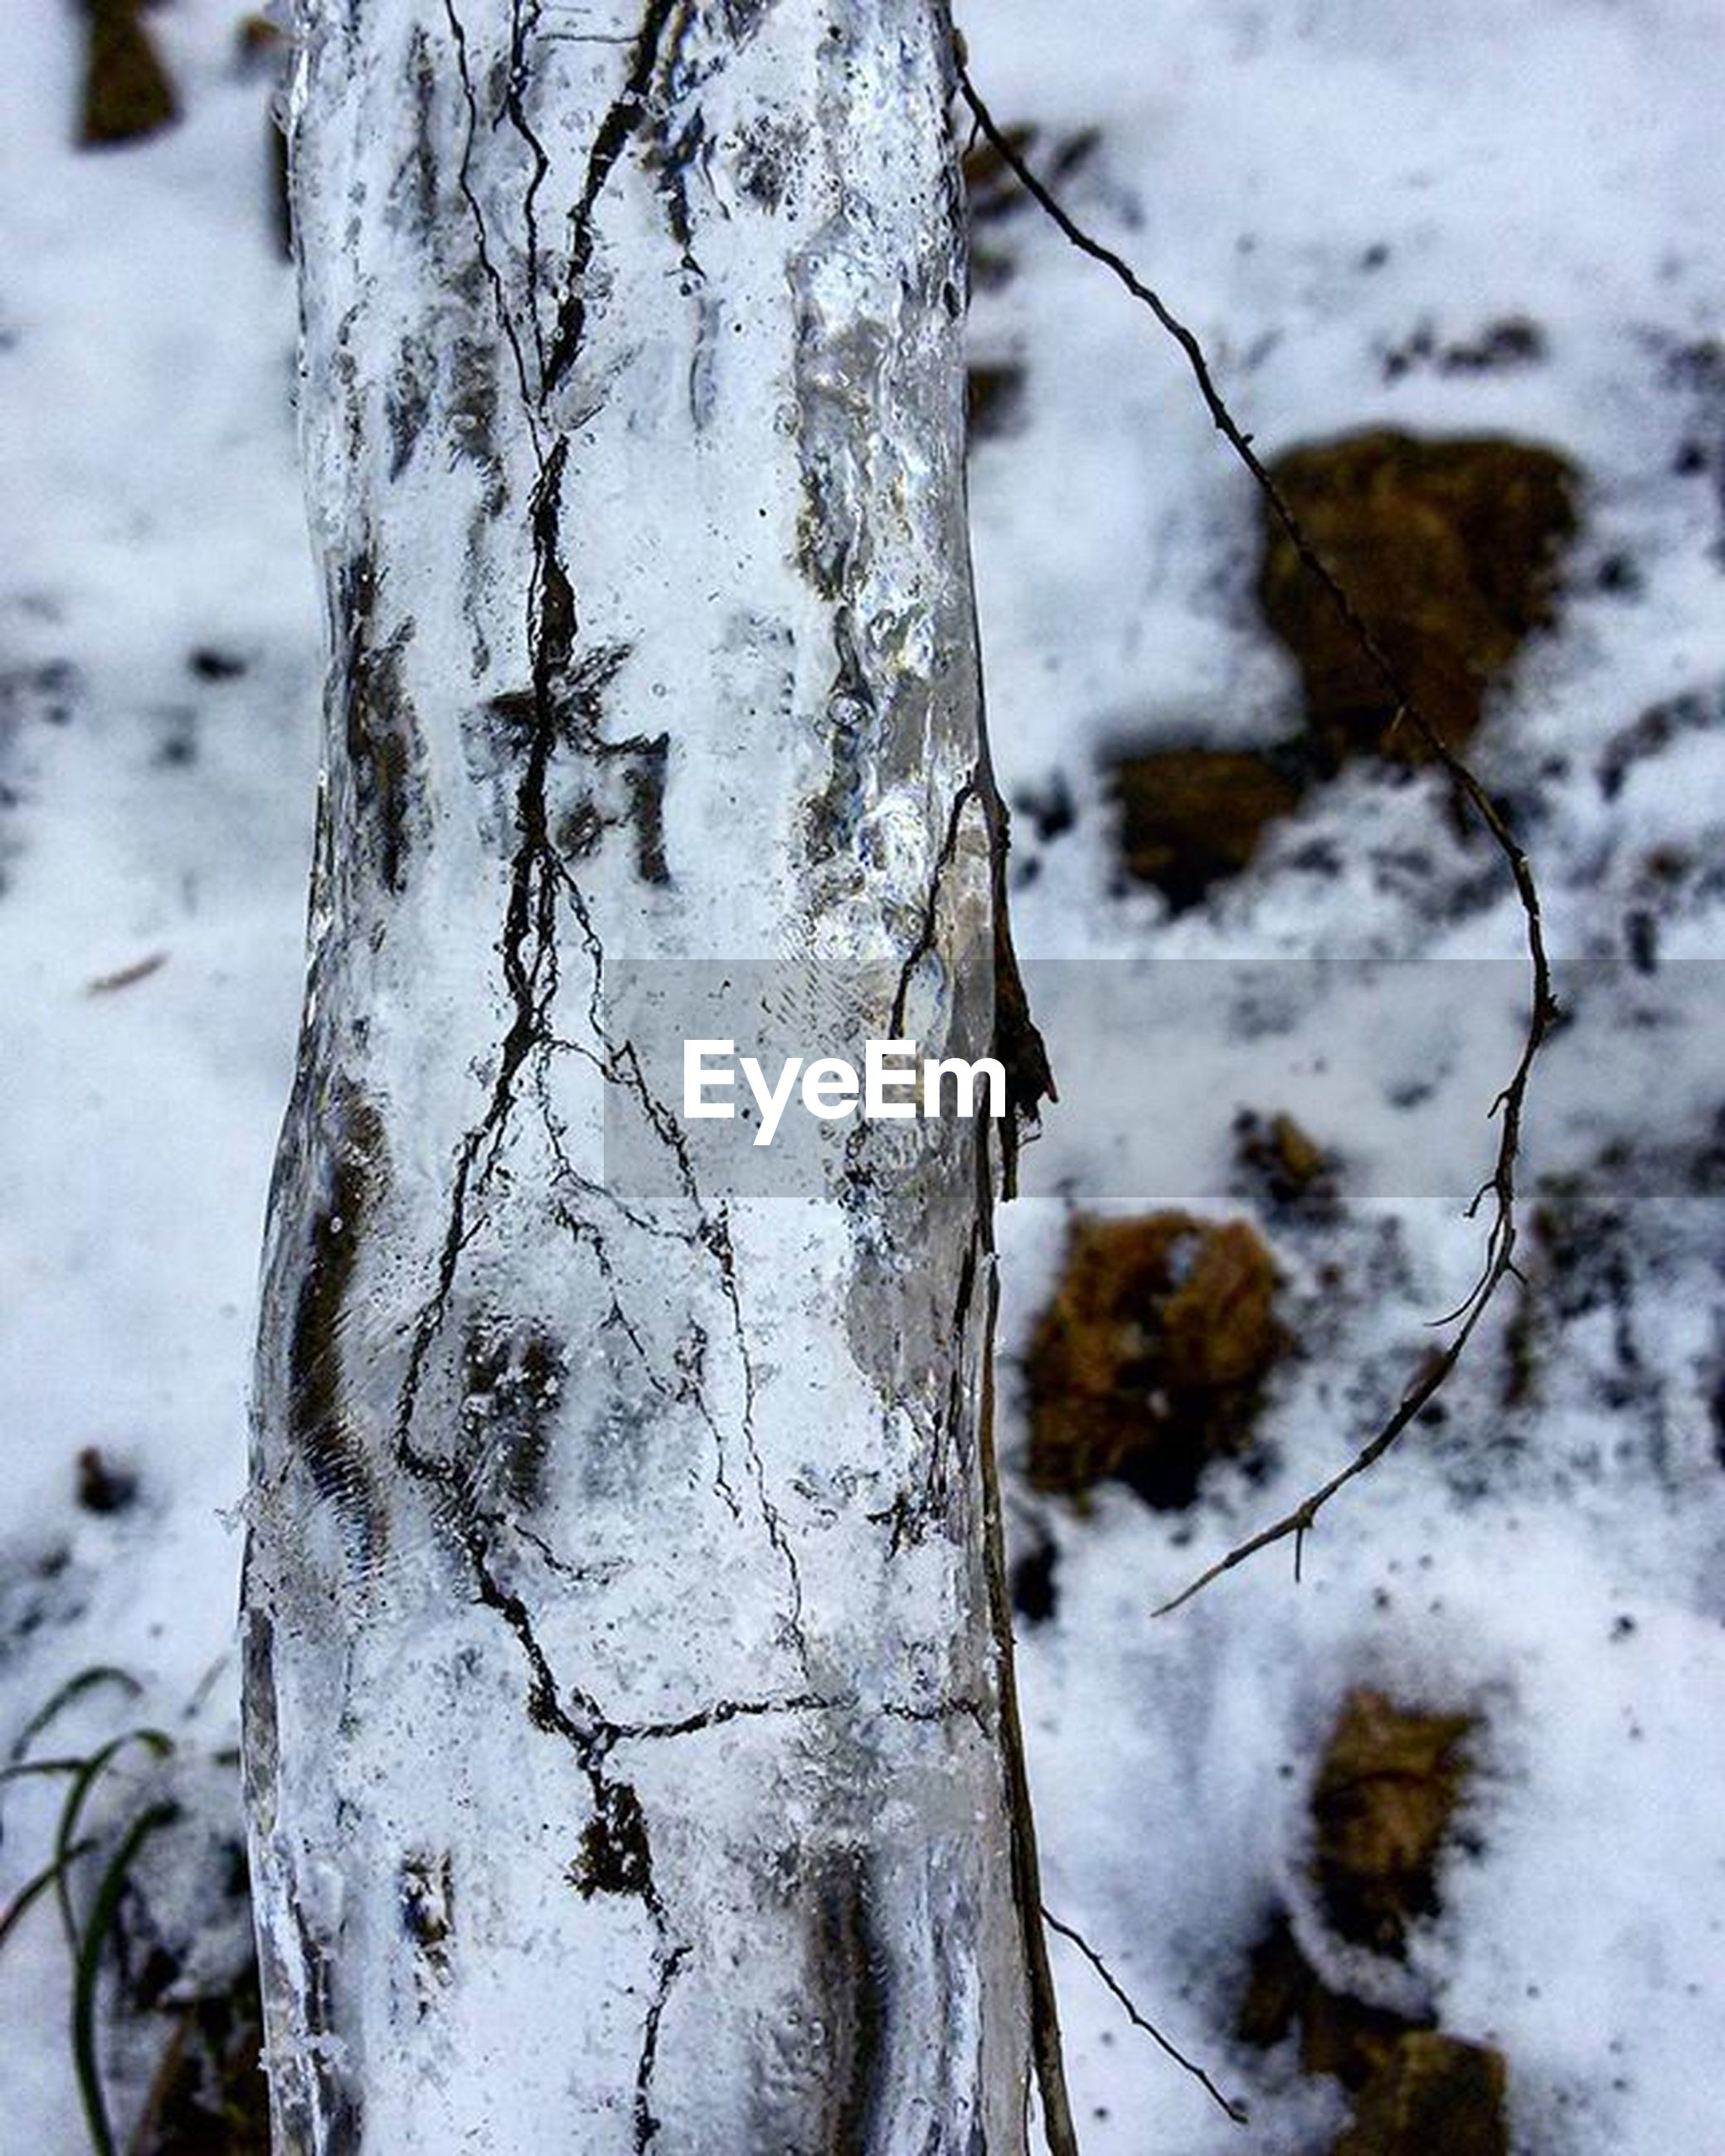 tree trunk, close-up, textured, tree, wood - material, nature, focus on foreground, water, rough, weathered, day, outdoors, winter, cold temperature, tranquility, bark, no people, branch, ice, season